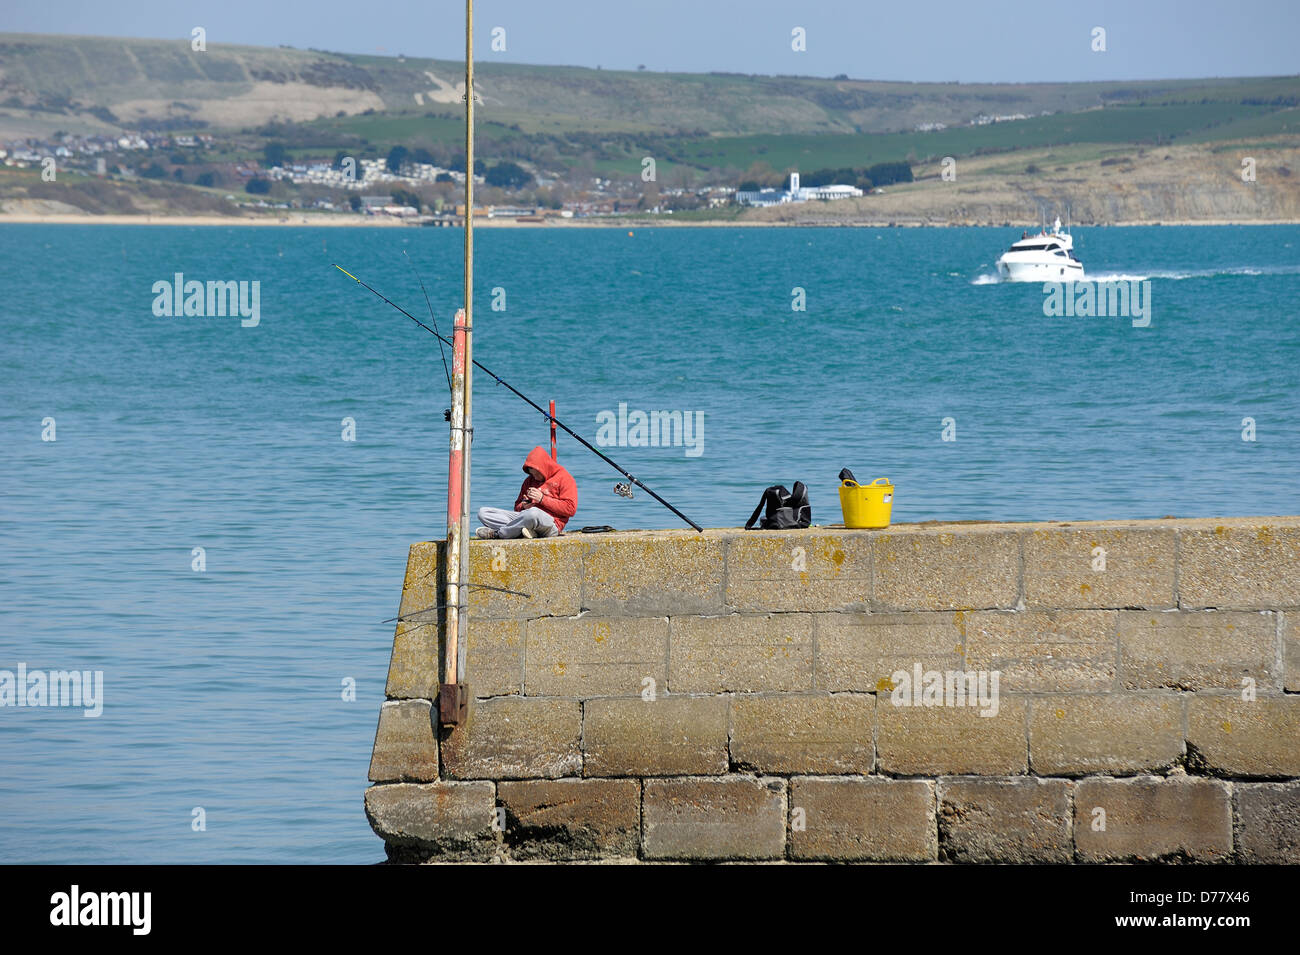 A man sea fishing from the sea wall in a red hoody weymouth dorset england uk - Stock Image